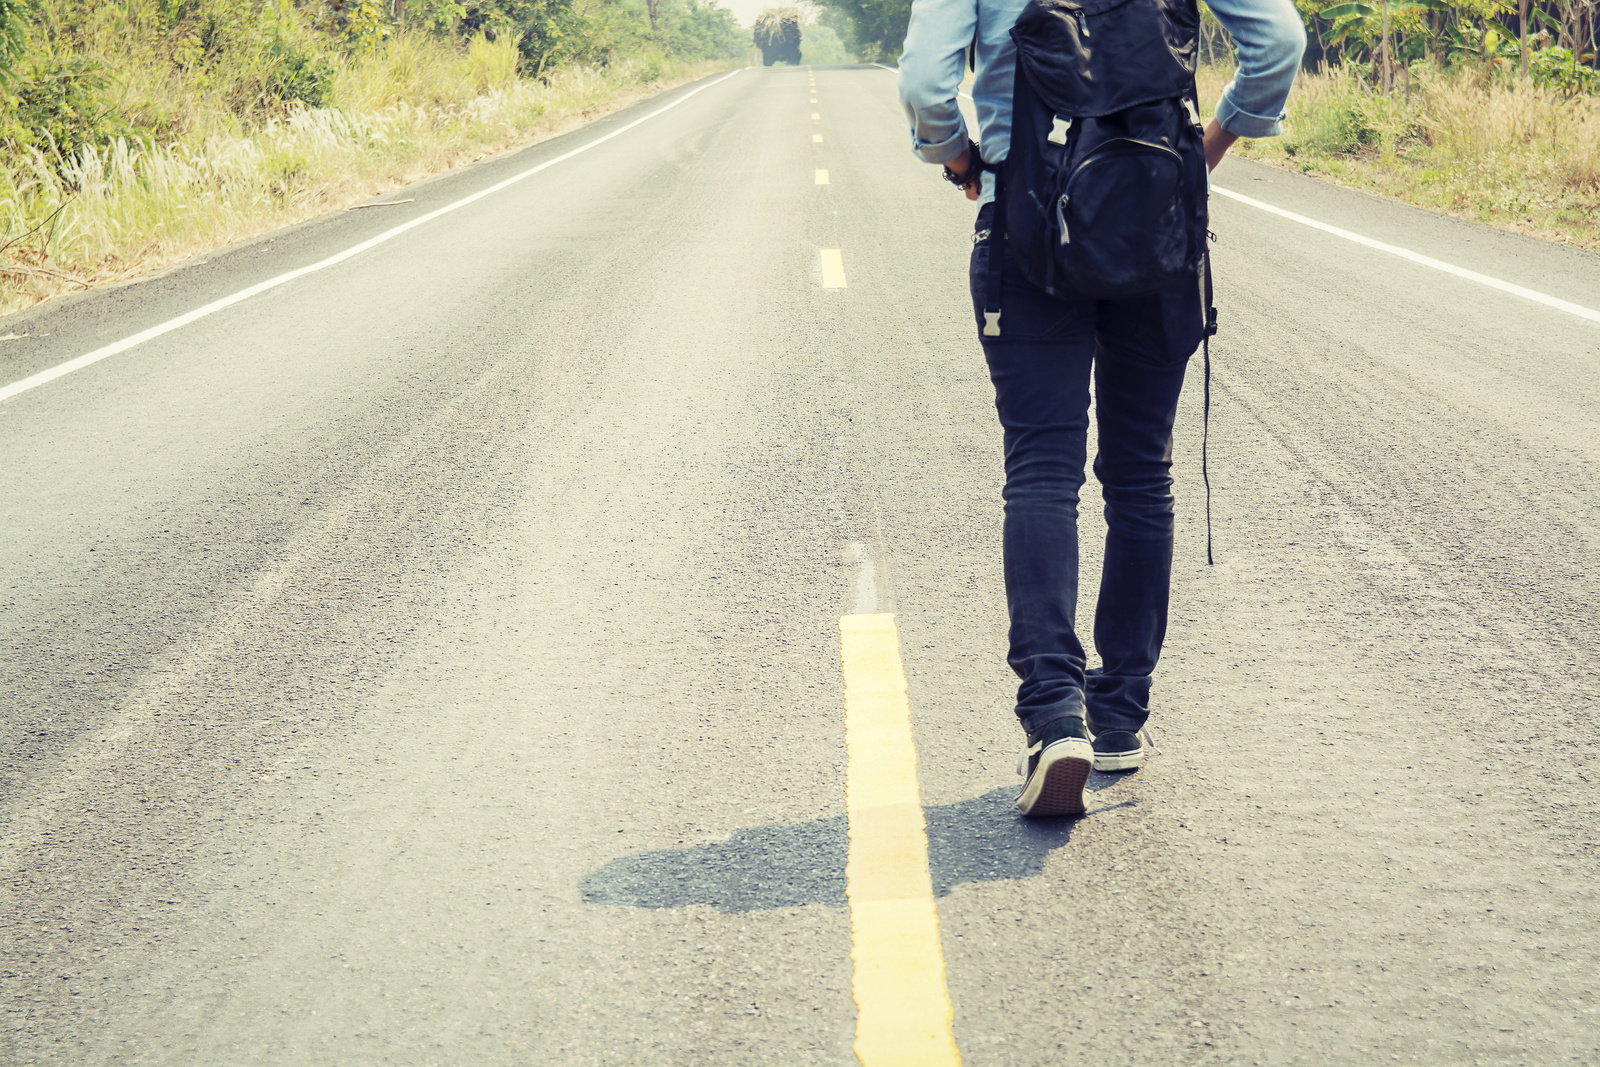 Rear view of a young woman hitchhiking carrying backpack walking